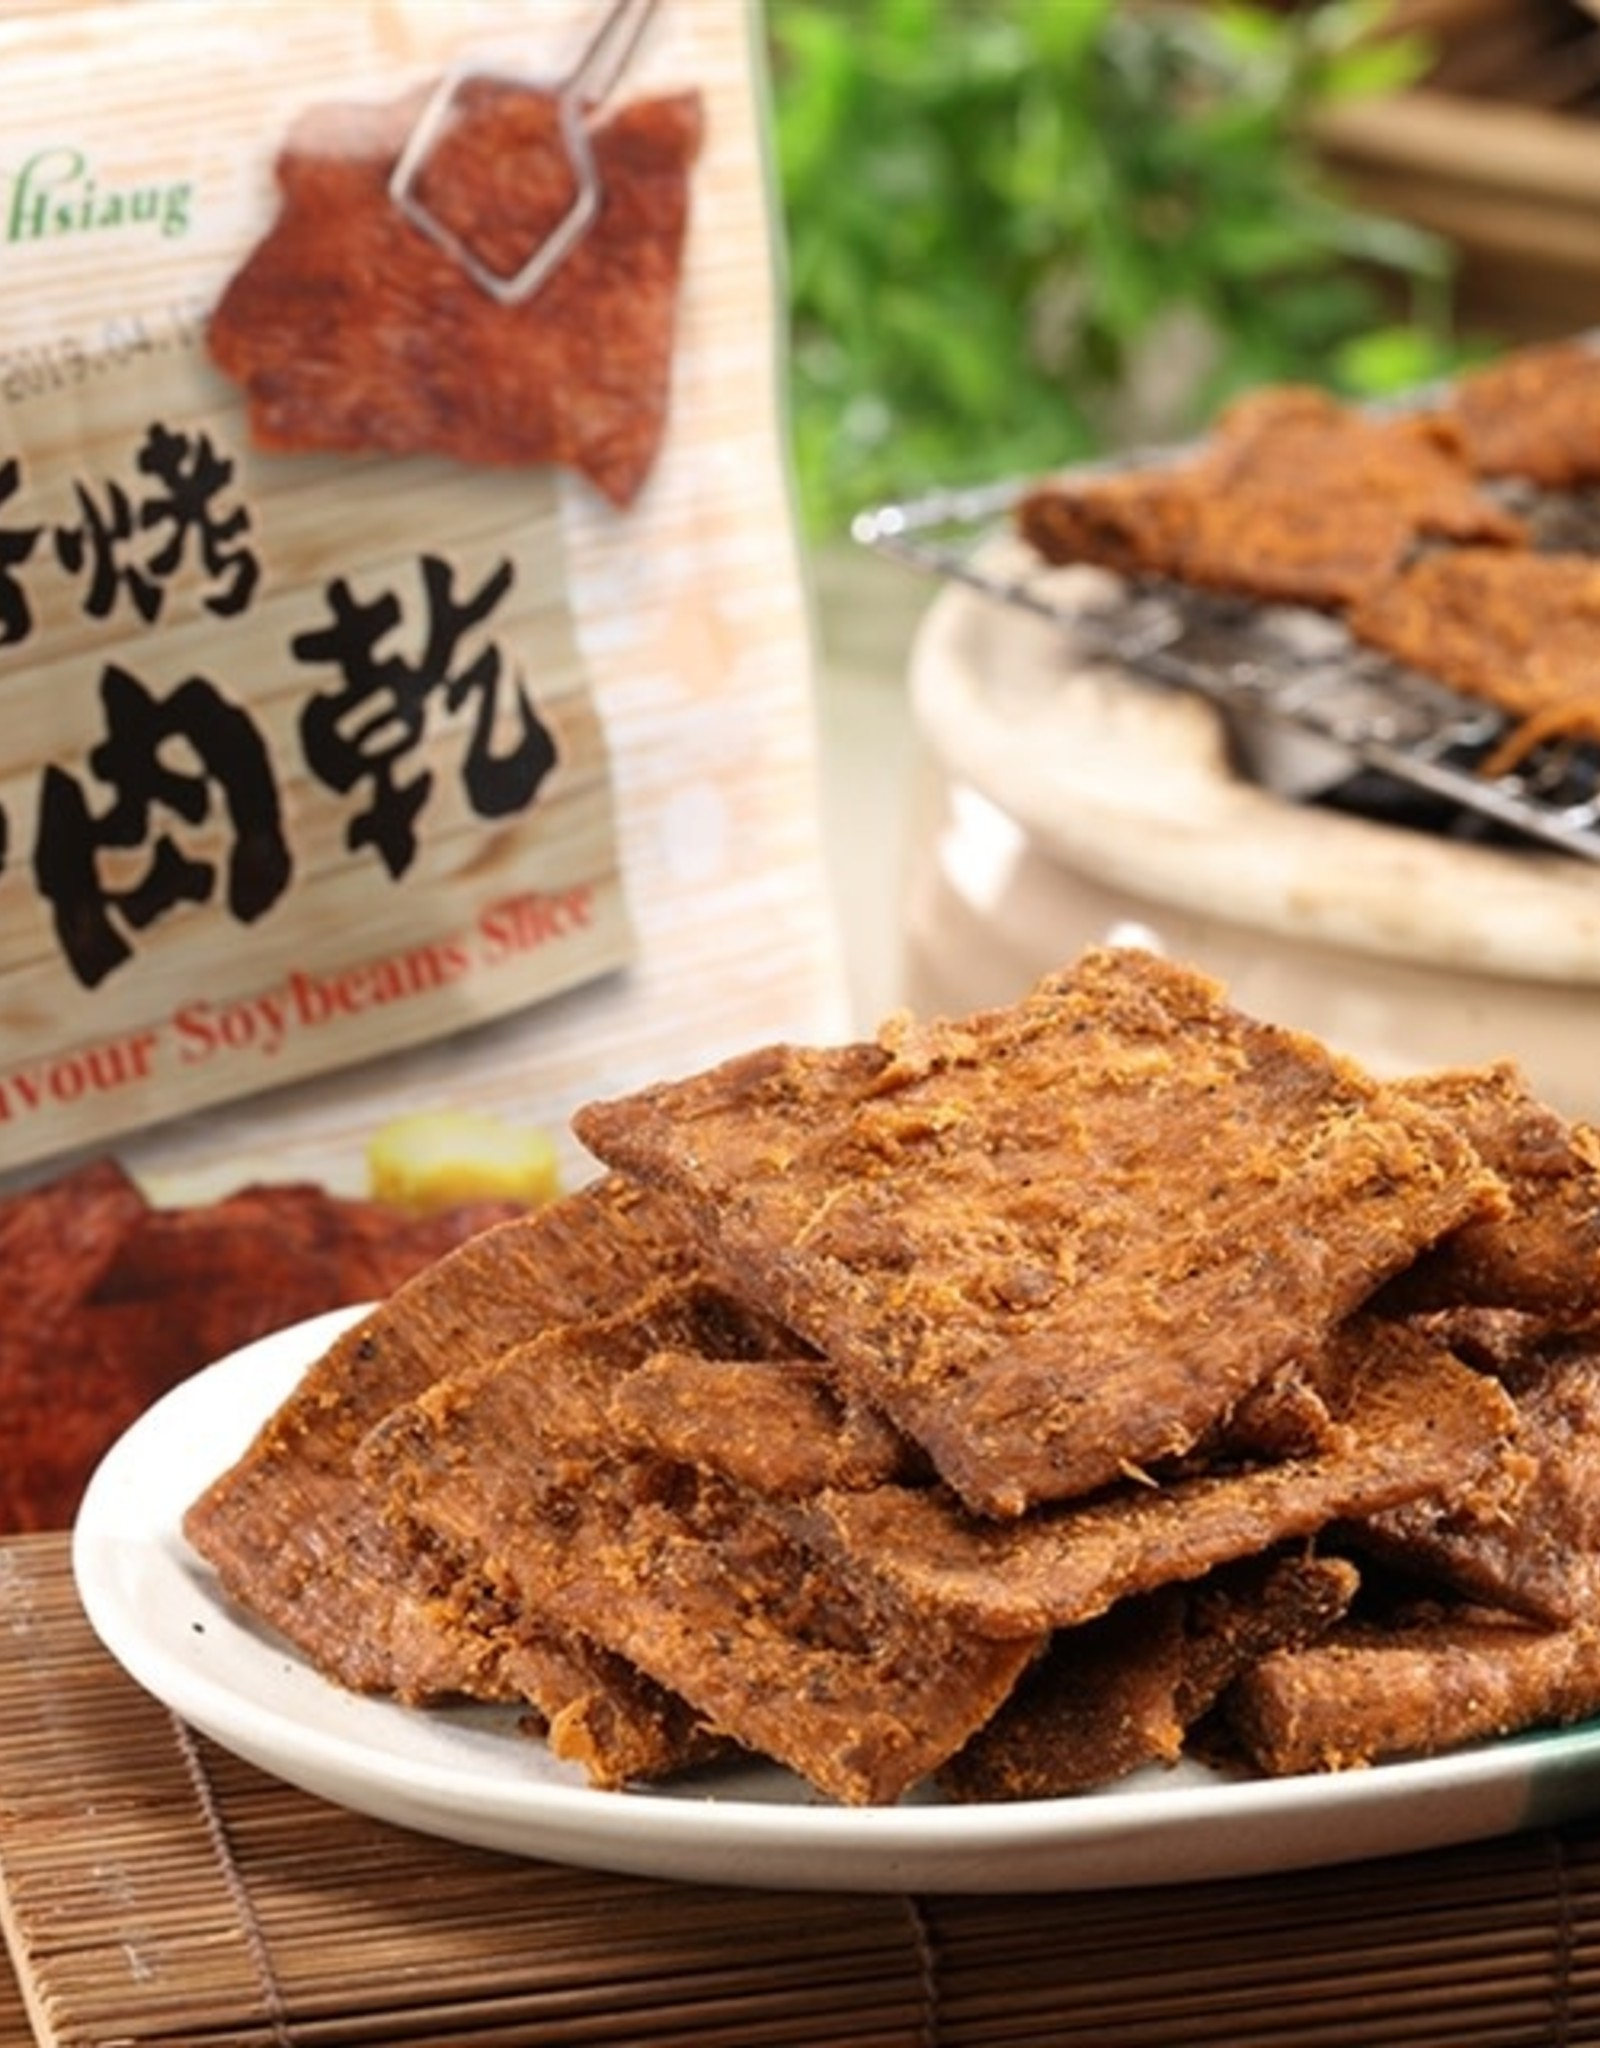 Fu Kuei Hsiang * 富貴香 (FKH) Vegan Beef Soybean Slice*(富貴香) 香烤牛肉干